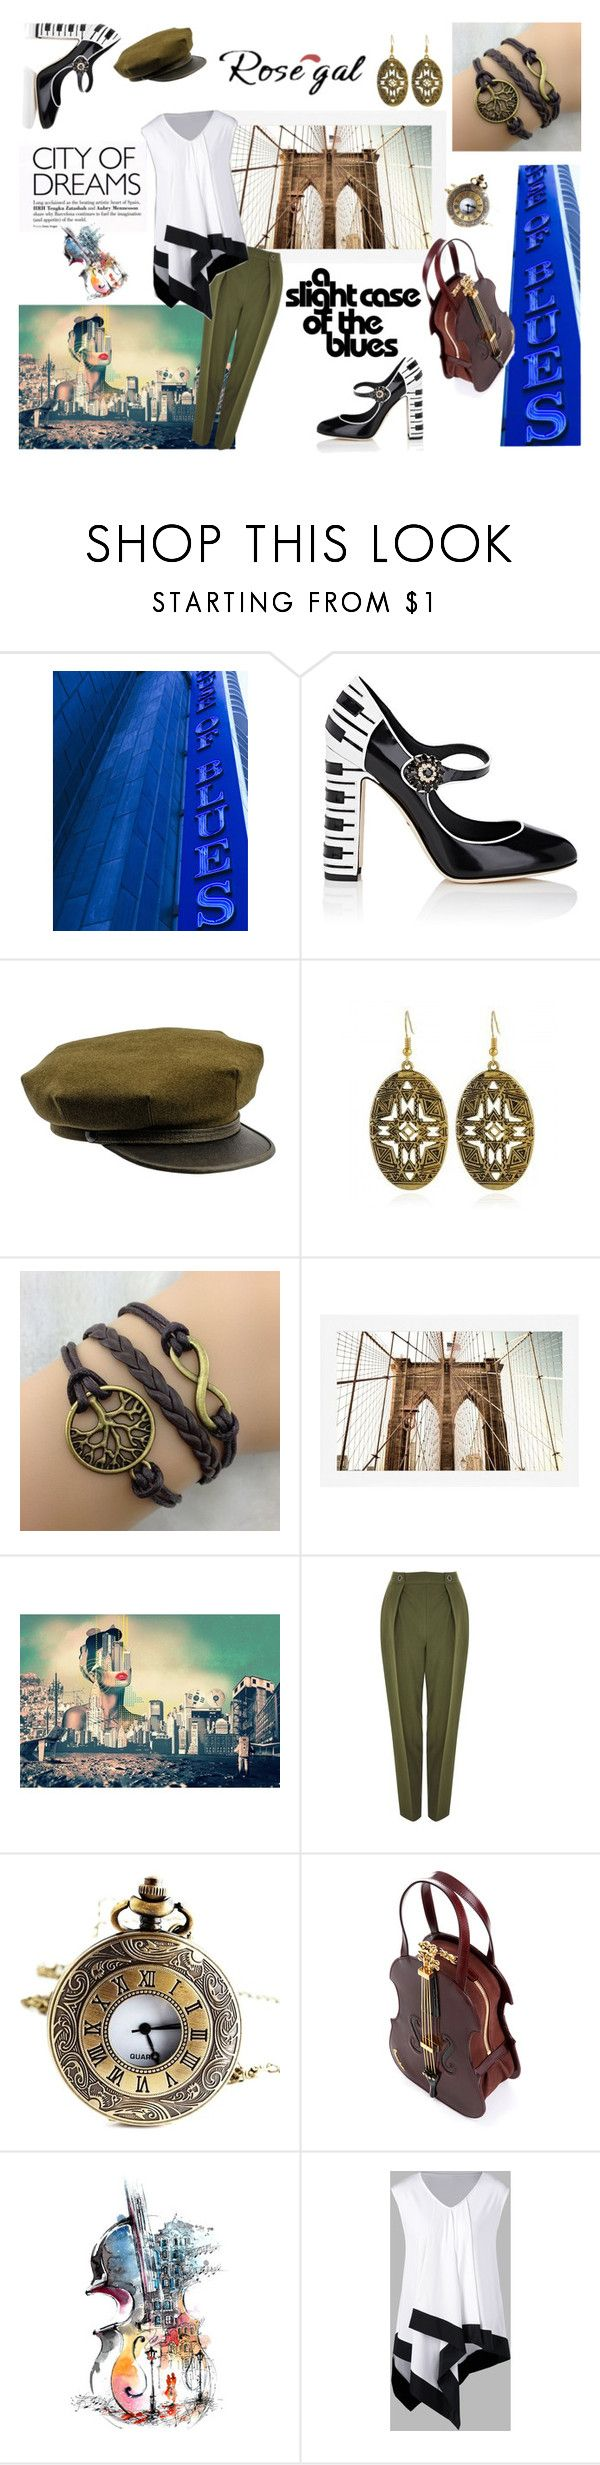 """""""The hip Brooklyn Musician"""" by saney ❤ liked on Polyvore featuring Dolce&Gabbana, Pottery Barn, Topshop, Braccialini, music, brooklyn and rosegal"""